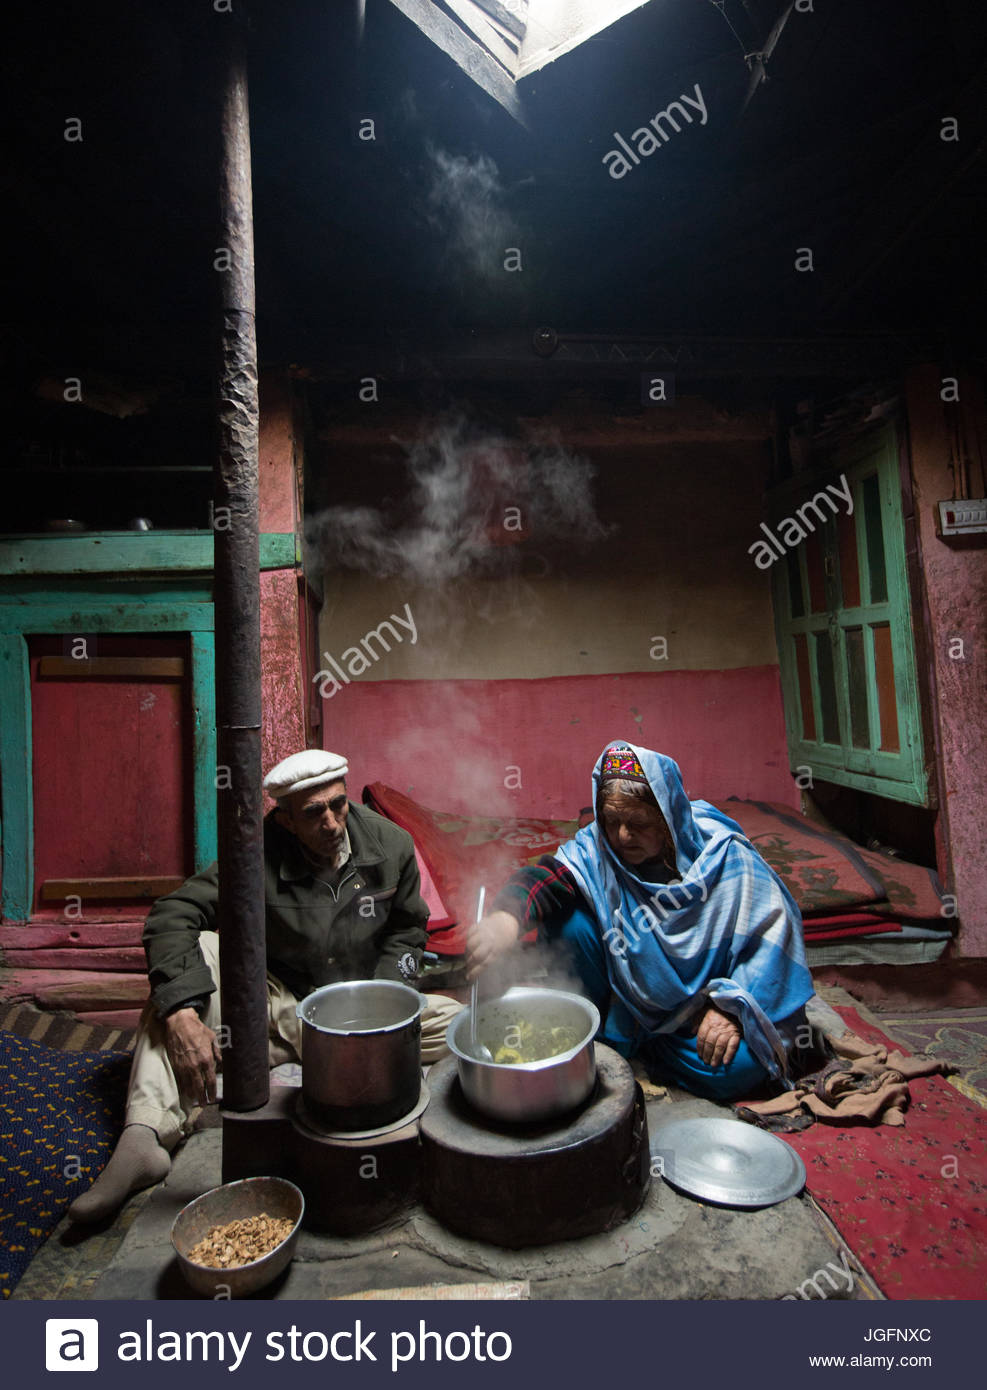 Cooking lunch in a home in the Hunza Region. - Stock Image